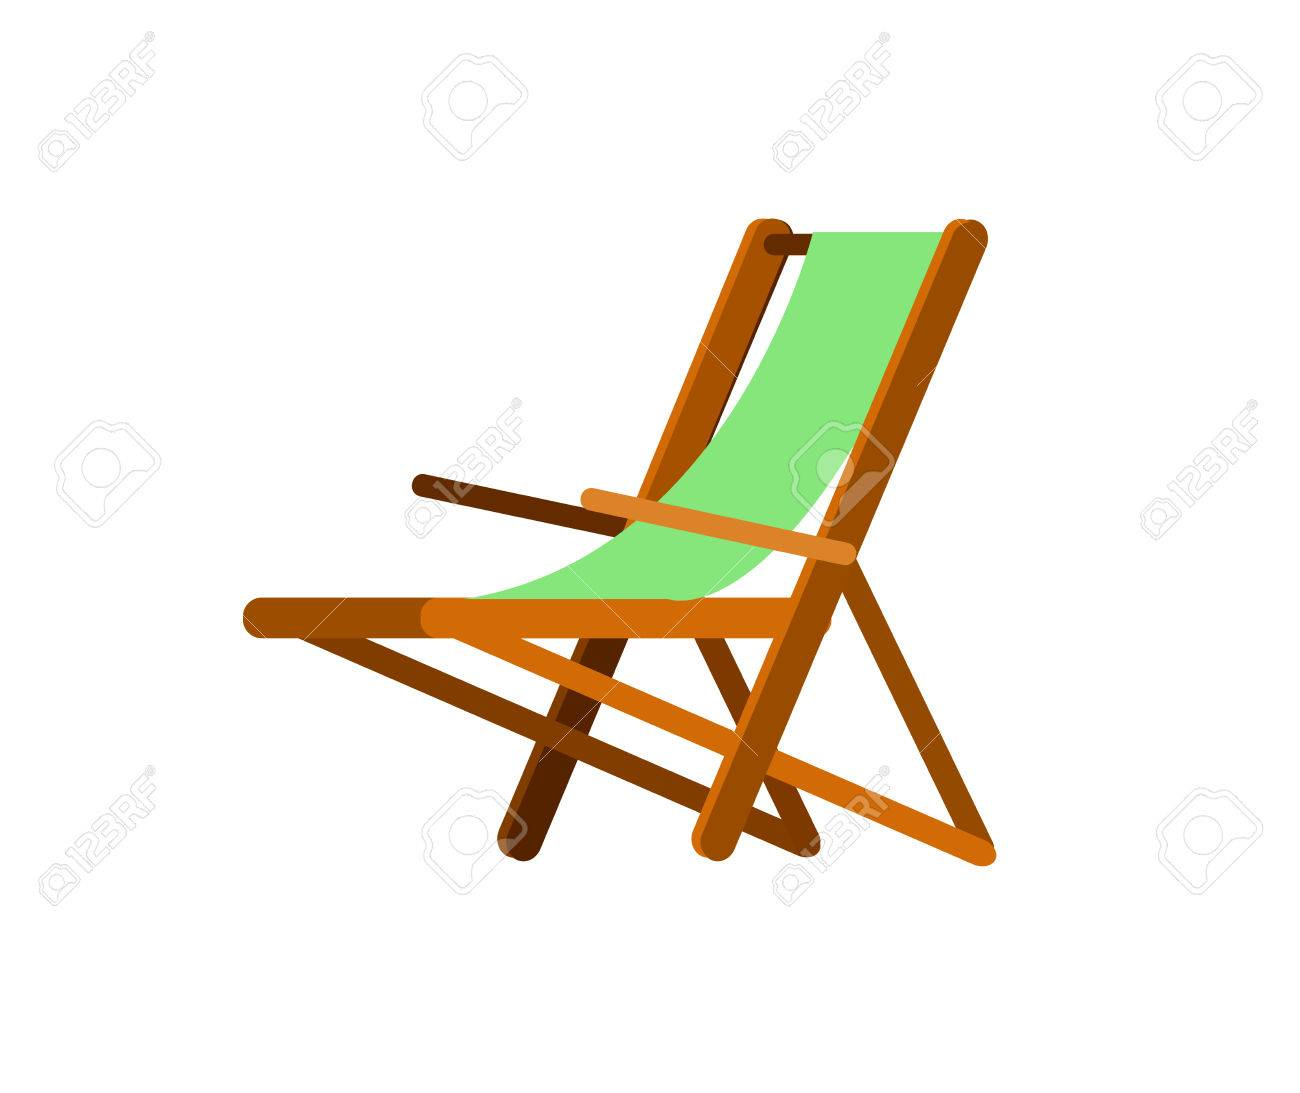 Chaise LongueLongueBeach Vector Vector Detailed Beach zVqpUGSM